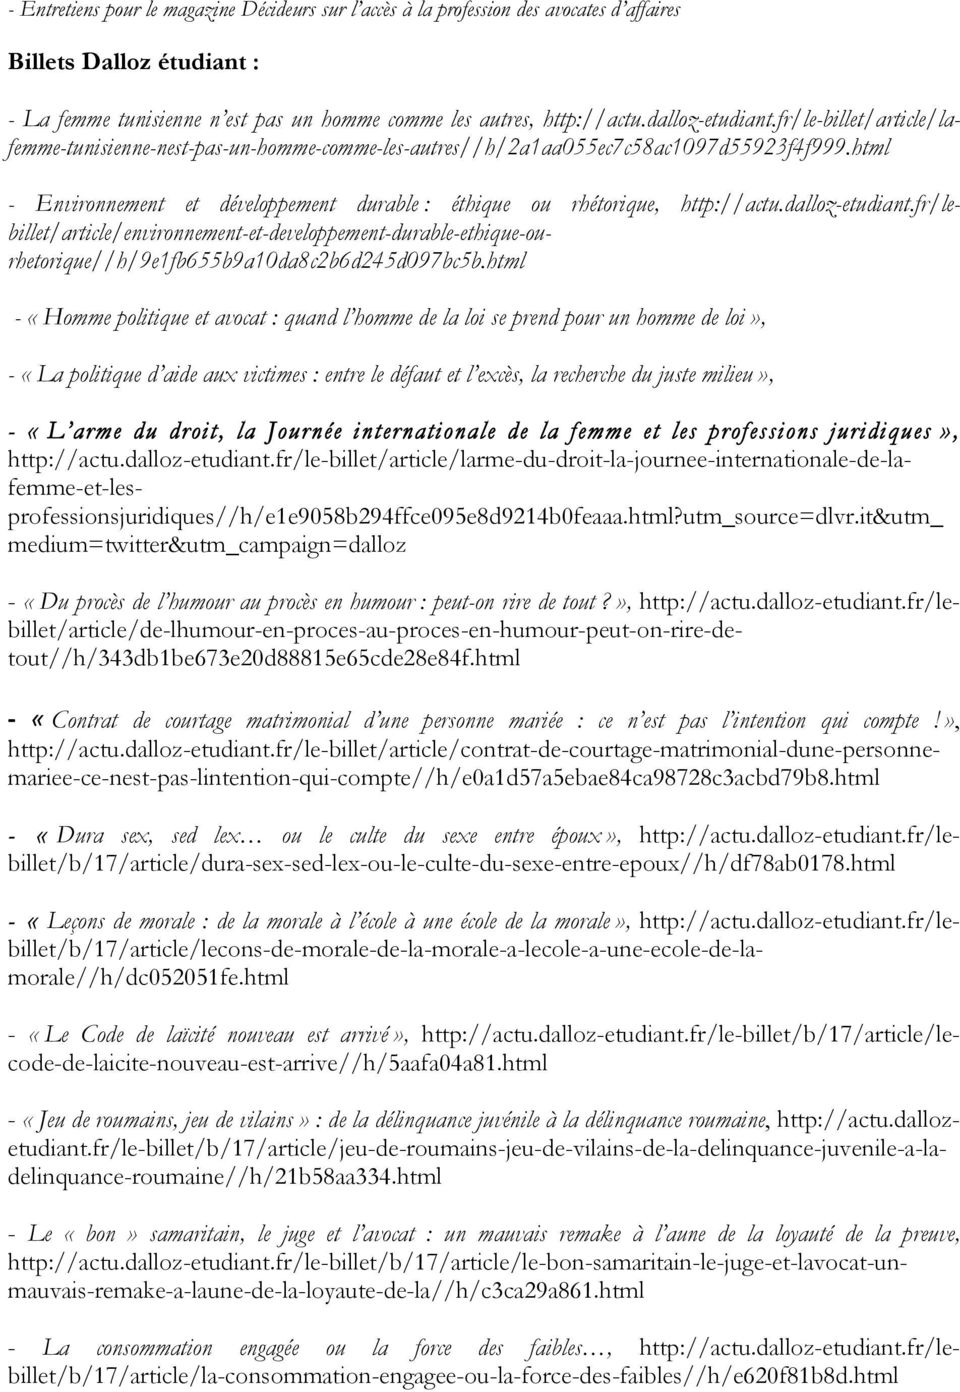 dallz-etudiant.fr/lebillet/article/envirnnement-et-develppement-durable-ethique-urhetrique//h/9e1fb655b9a10da8c2b6d245d097bc5b.